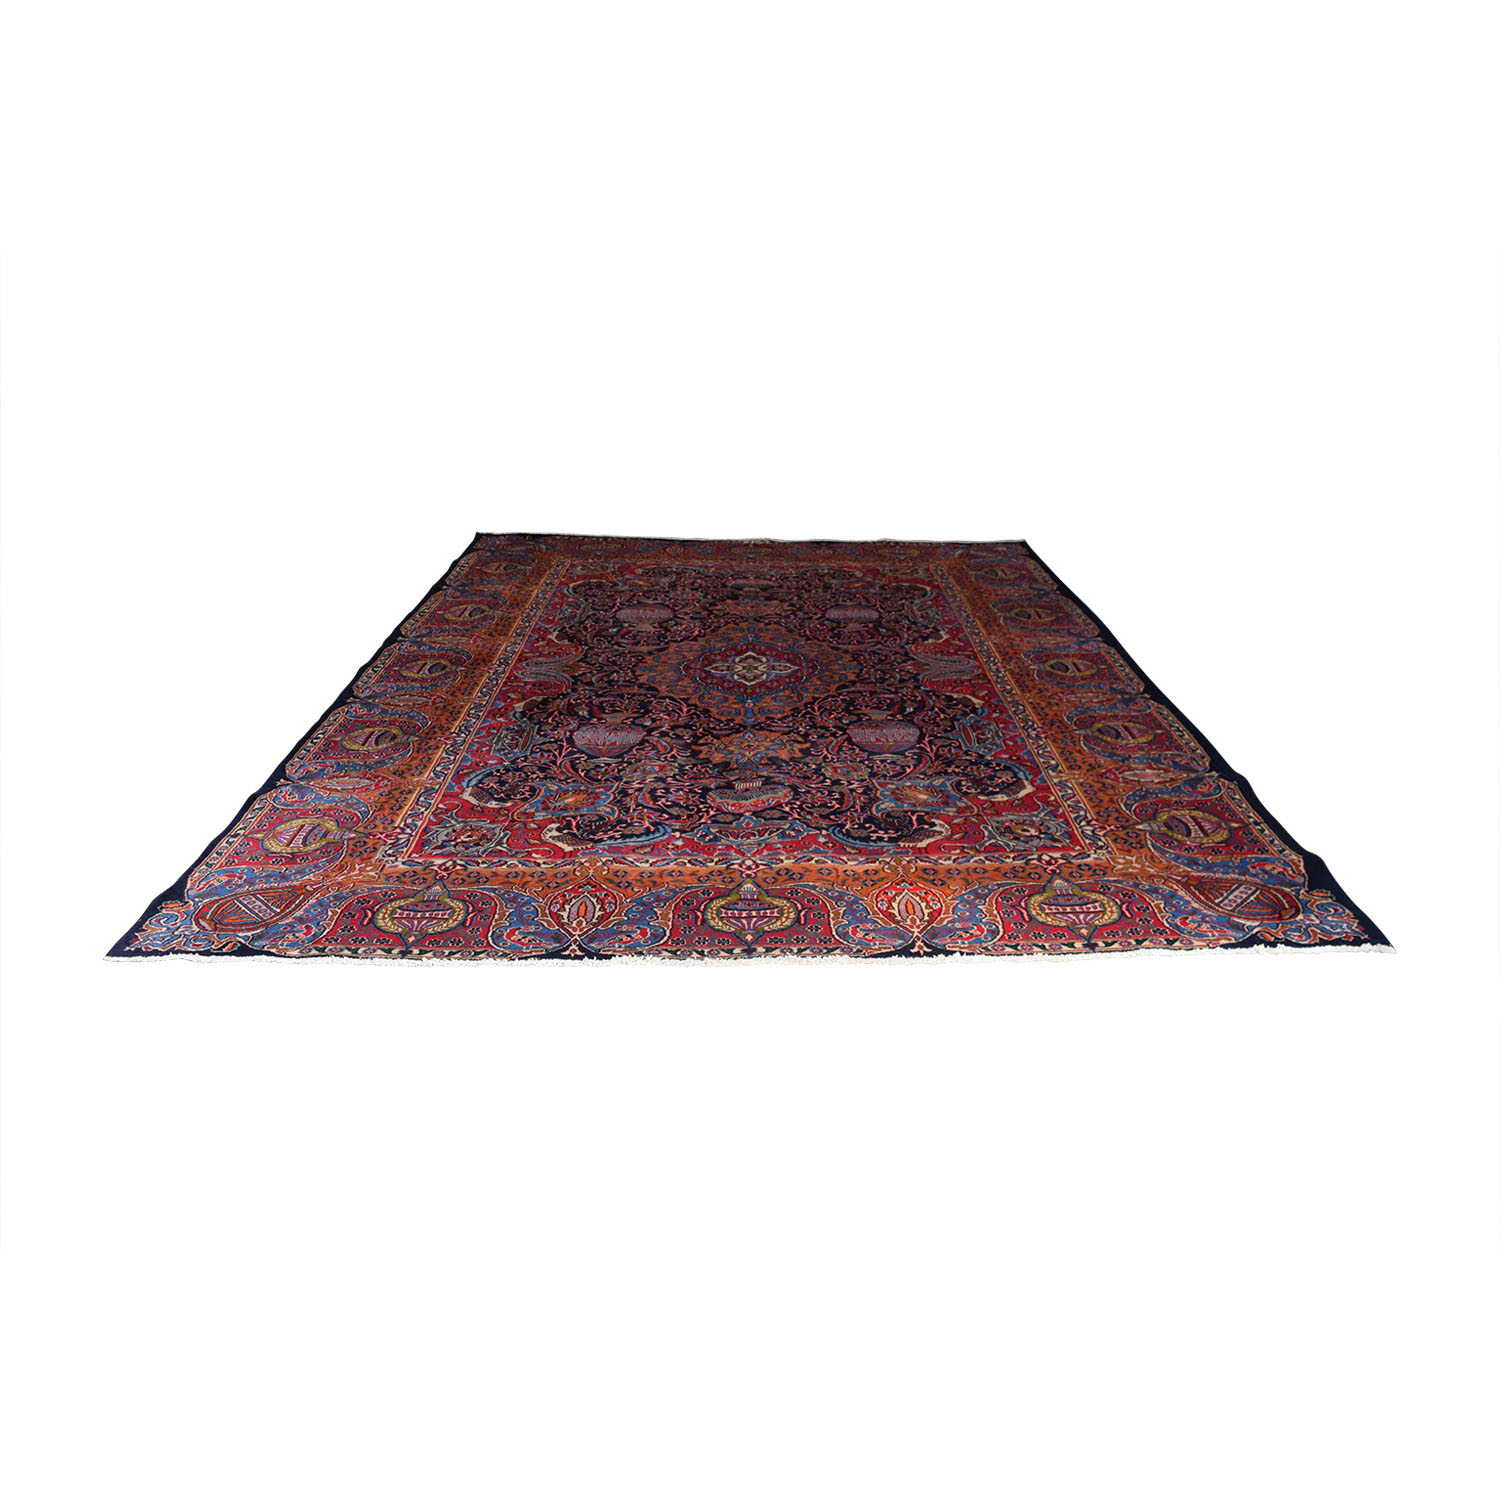 Vespucci Vespucci Antique Persian Multi-Colored Hand Knotted Rug coupon